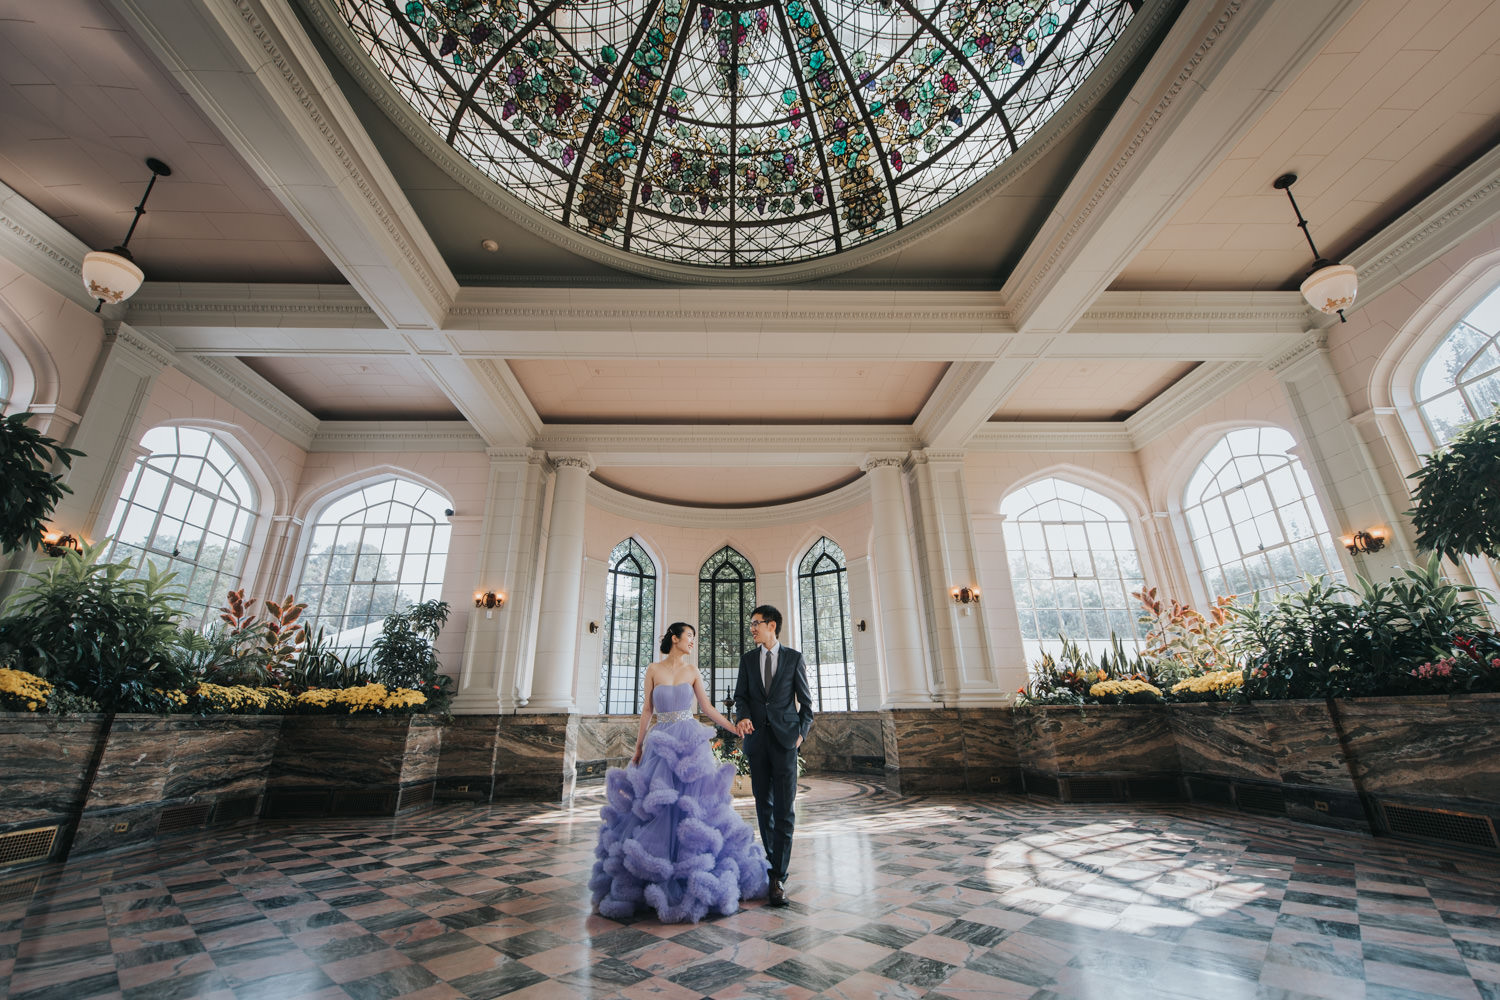 fairytale wedding at Casa Loma Toronto